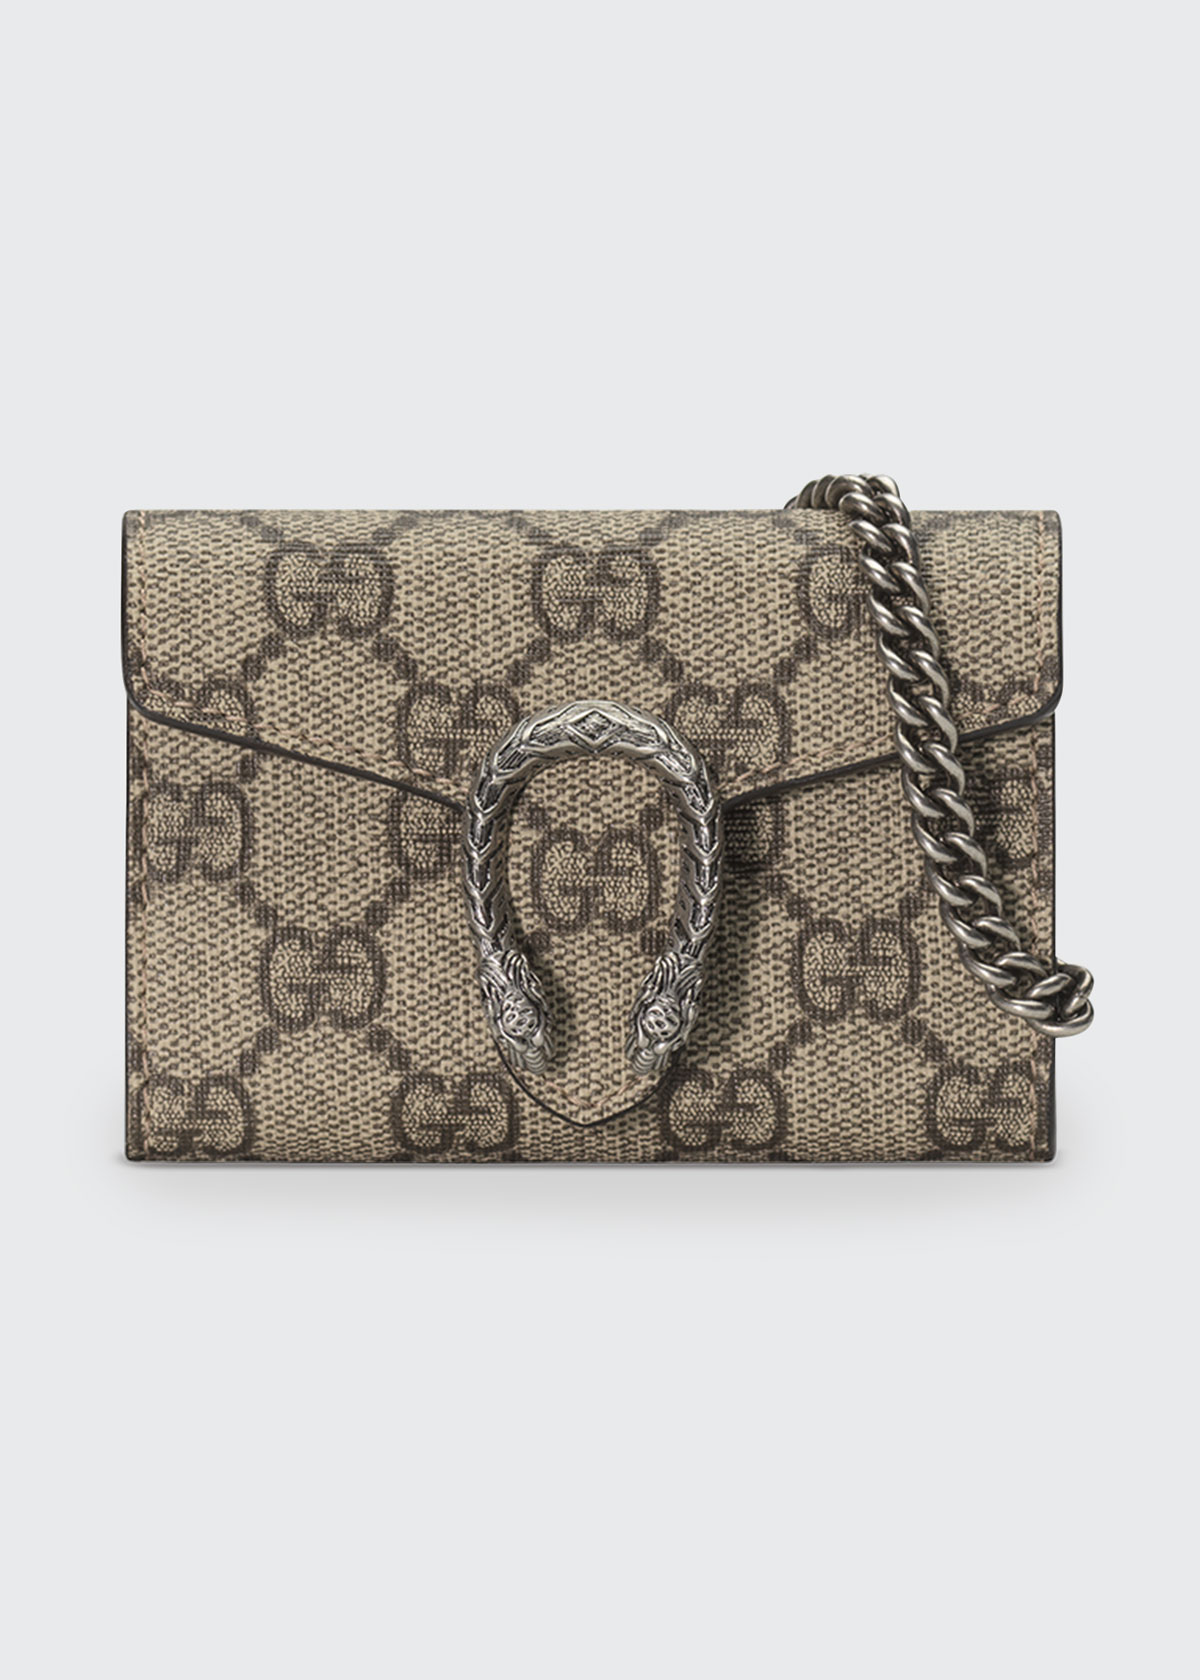 Dionysus Gg Supreme Canvas Coin Purse On A Chain , Beige in 8642 Bebony/Ta